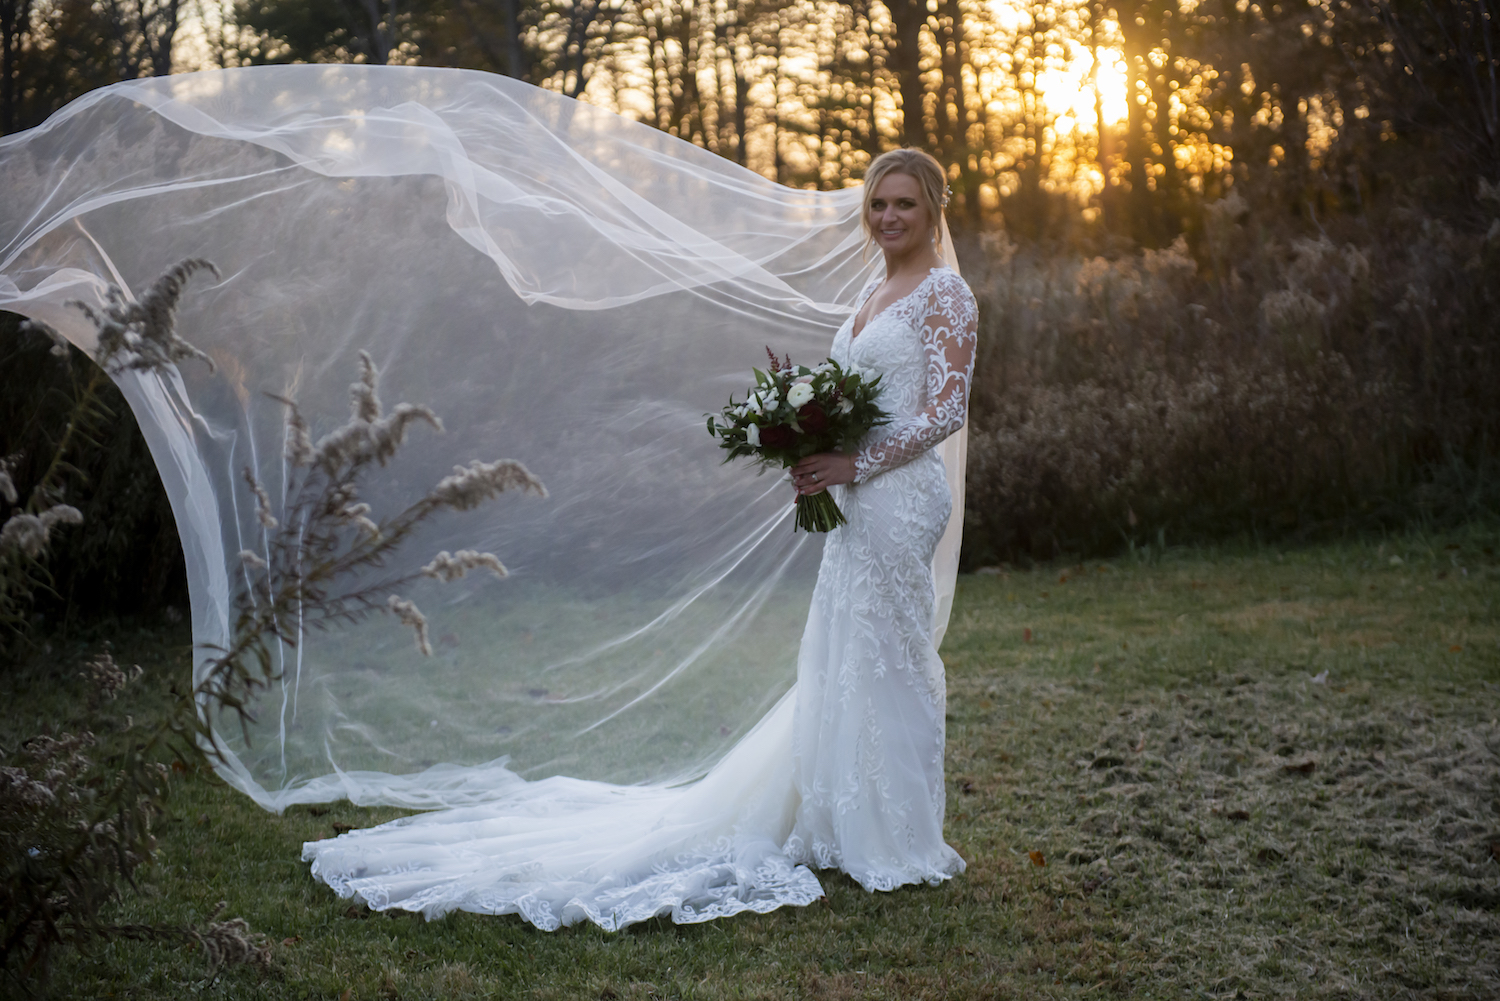 Bride's veil flowing in field for rustic Michigan wedding